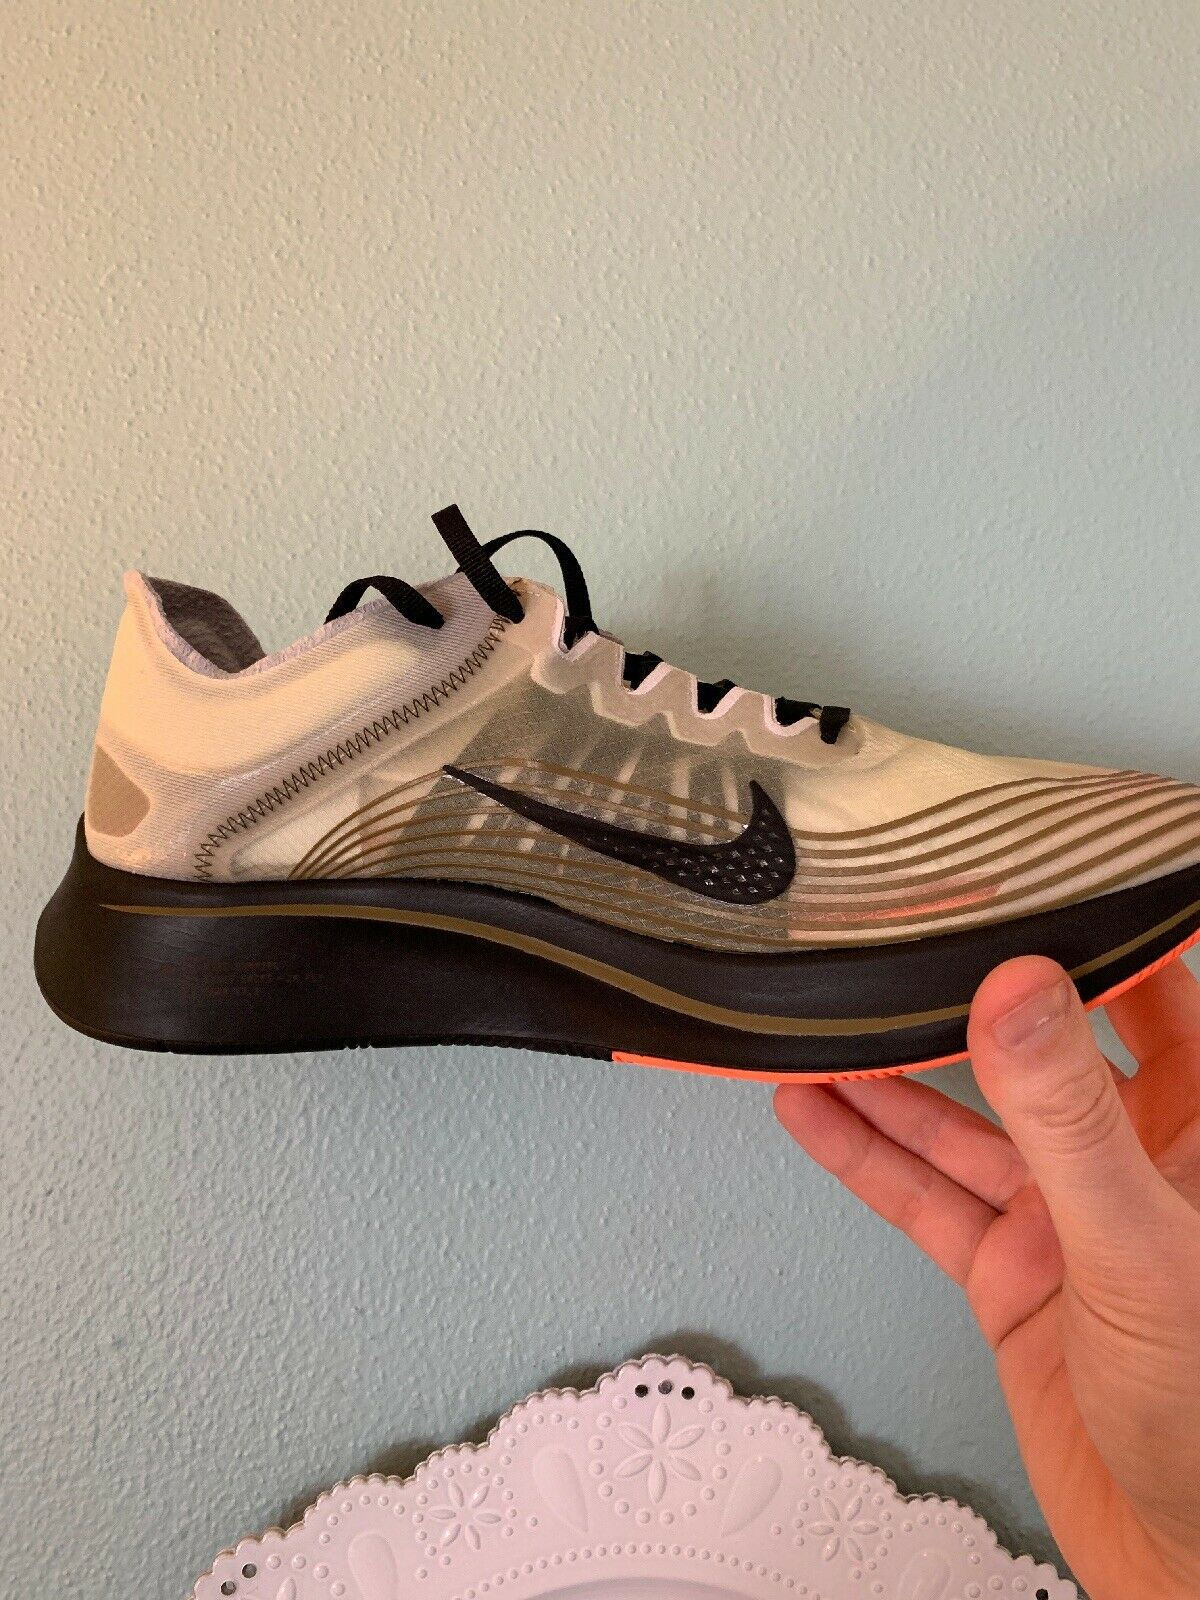 Mens Nike Zoom Fly SP Size 8 (AJ9282 200) No Box